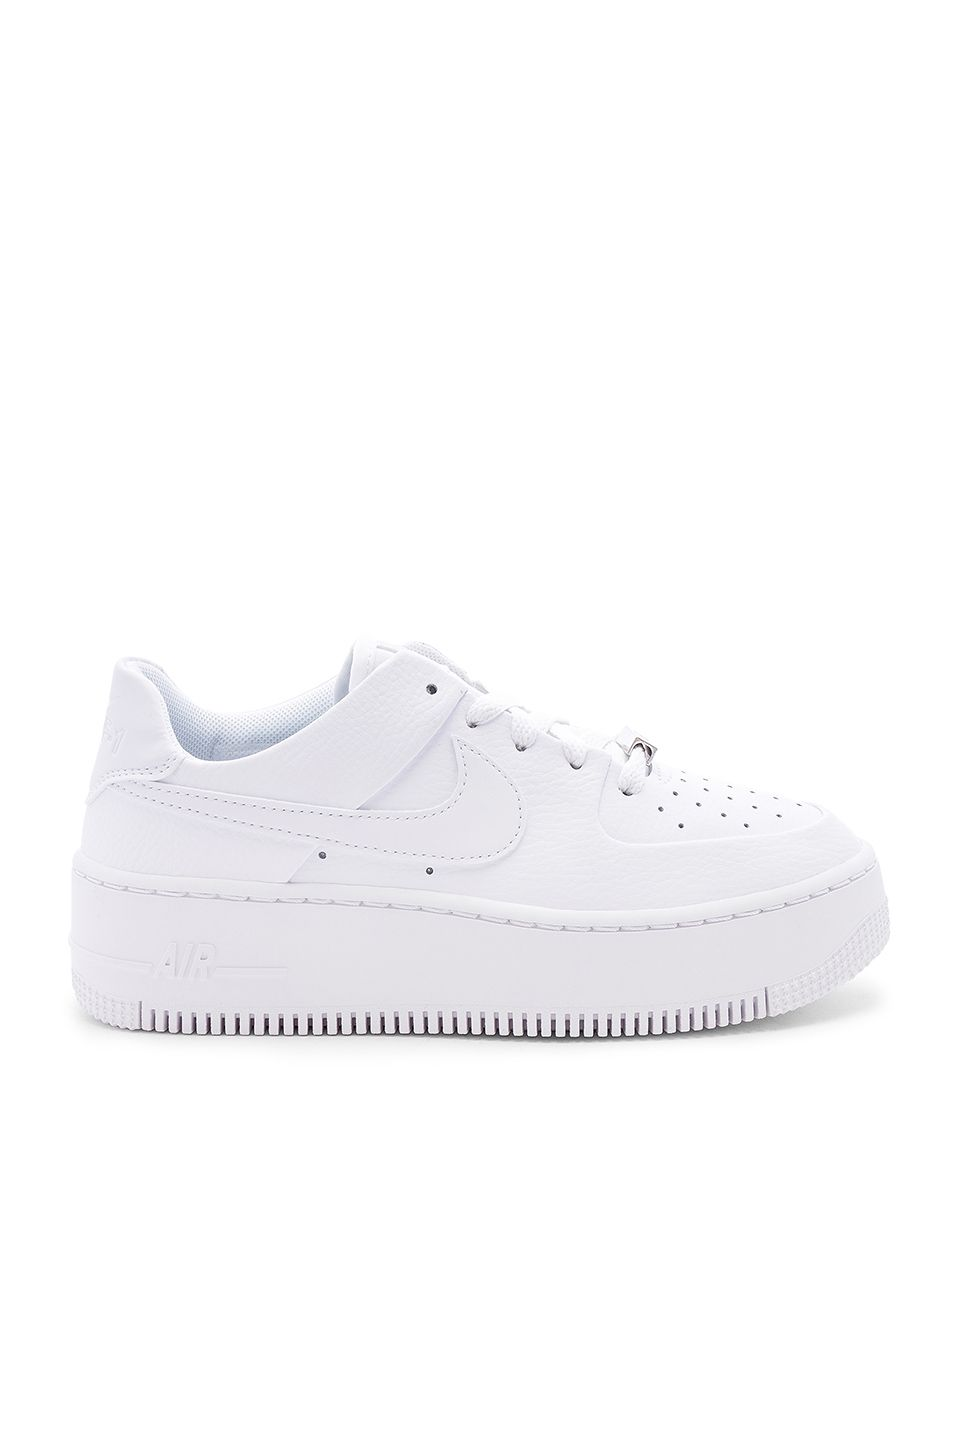 innovative design aa1a9 eb6db Nike Air Force 1 Sage Low Sneaker in White